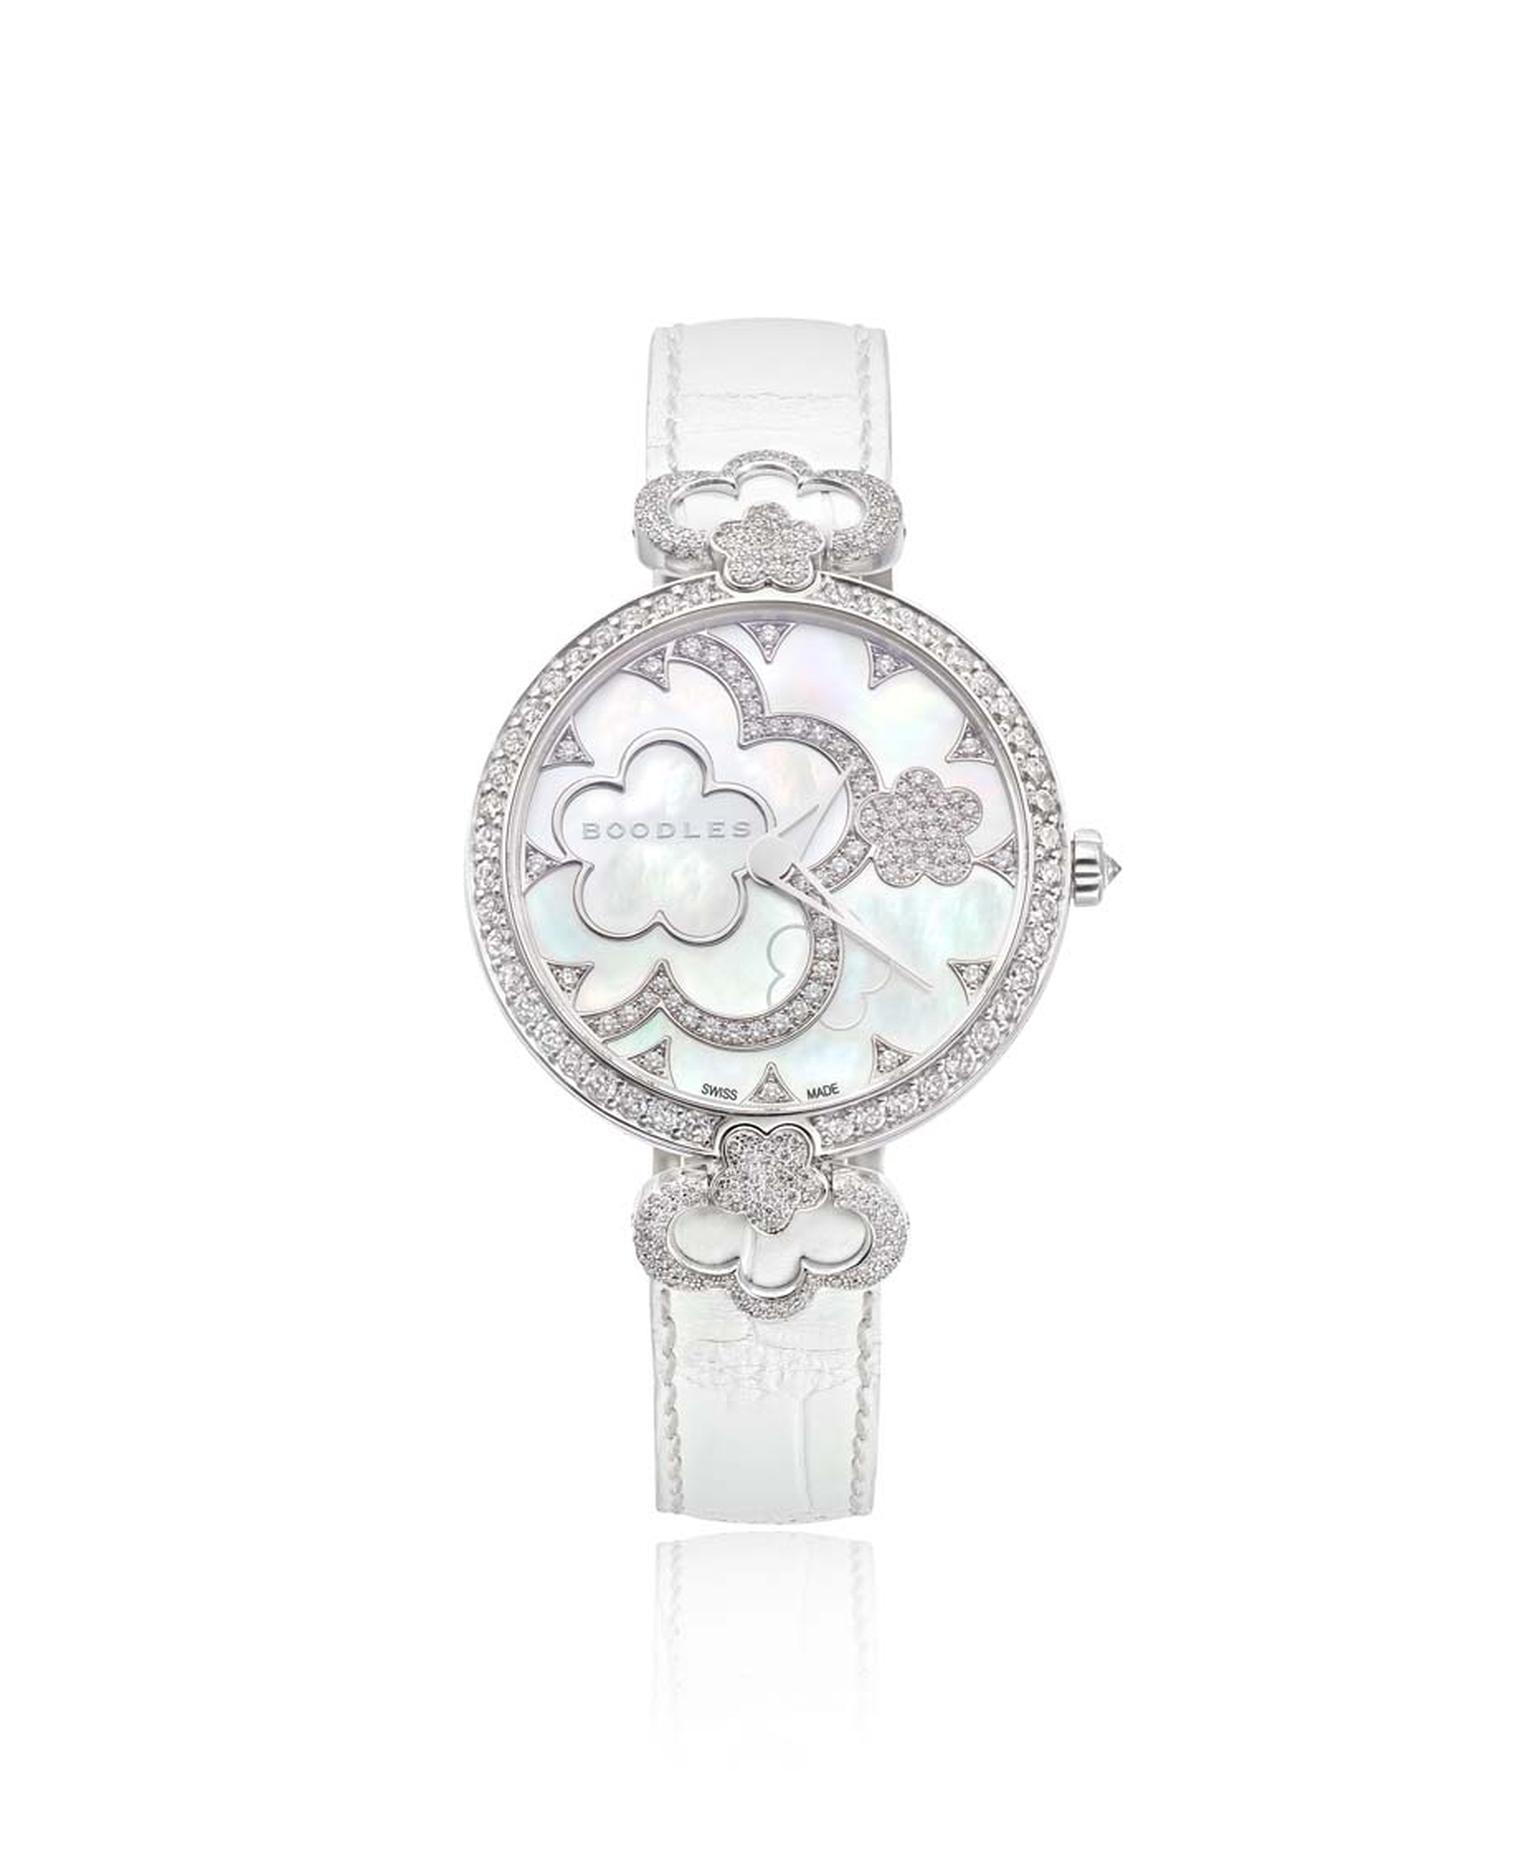 Boodles 37mm Blossom watch in white gold watch with a mother-of-pearl dial and diamonds.